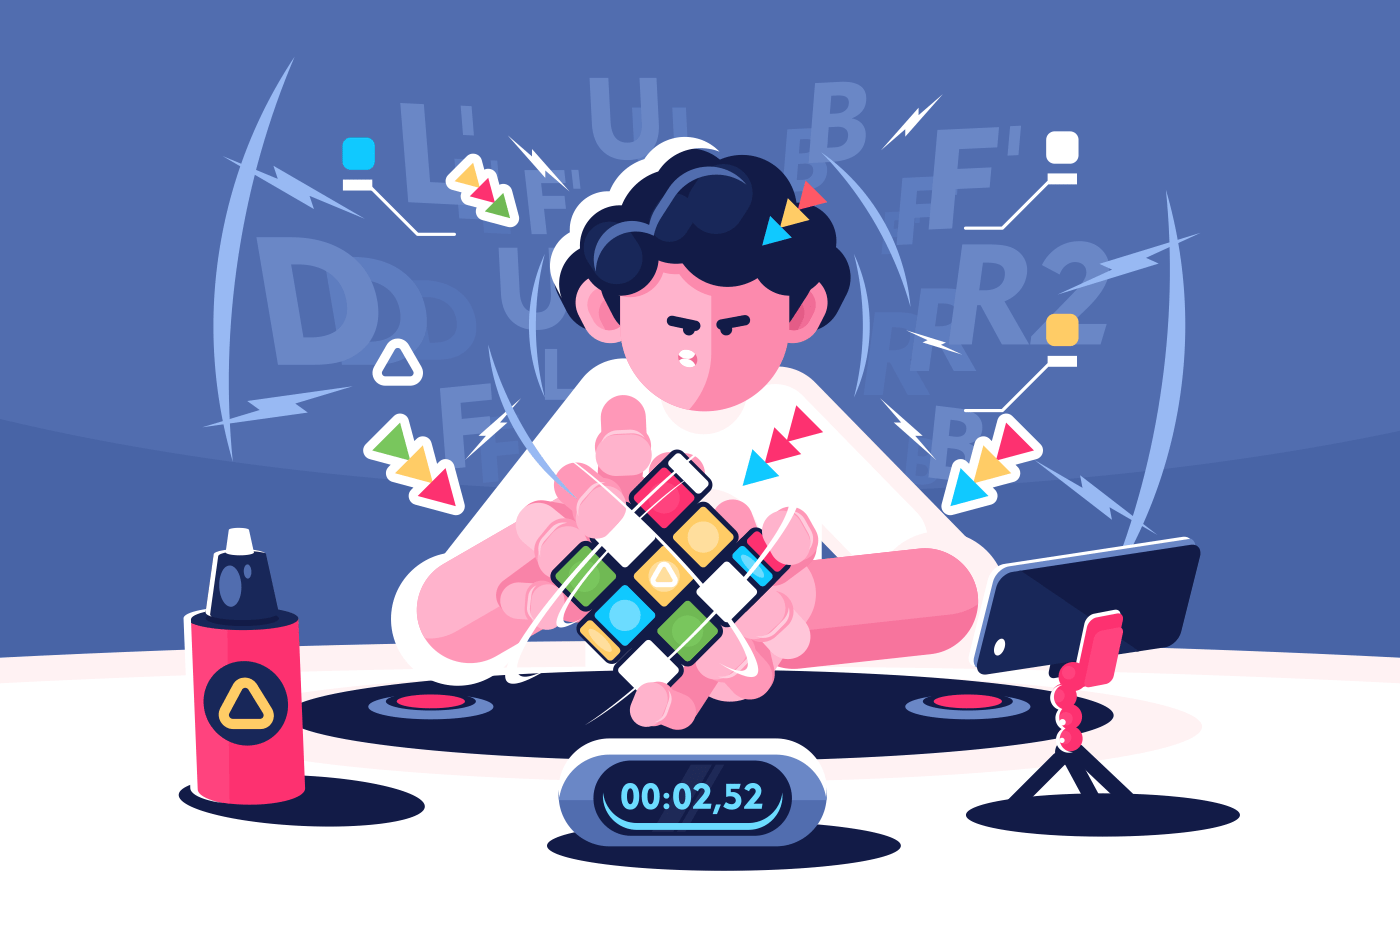 Man collect Rubik Cube timer championship concept. Player brainstorming successful compile strategy. Flat. Vector illustration.